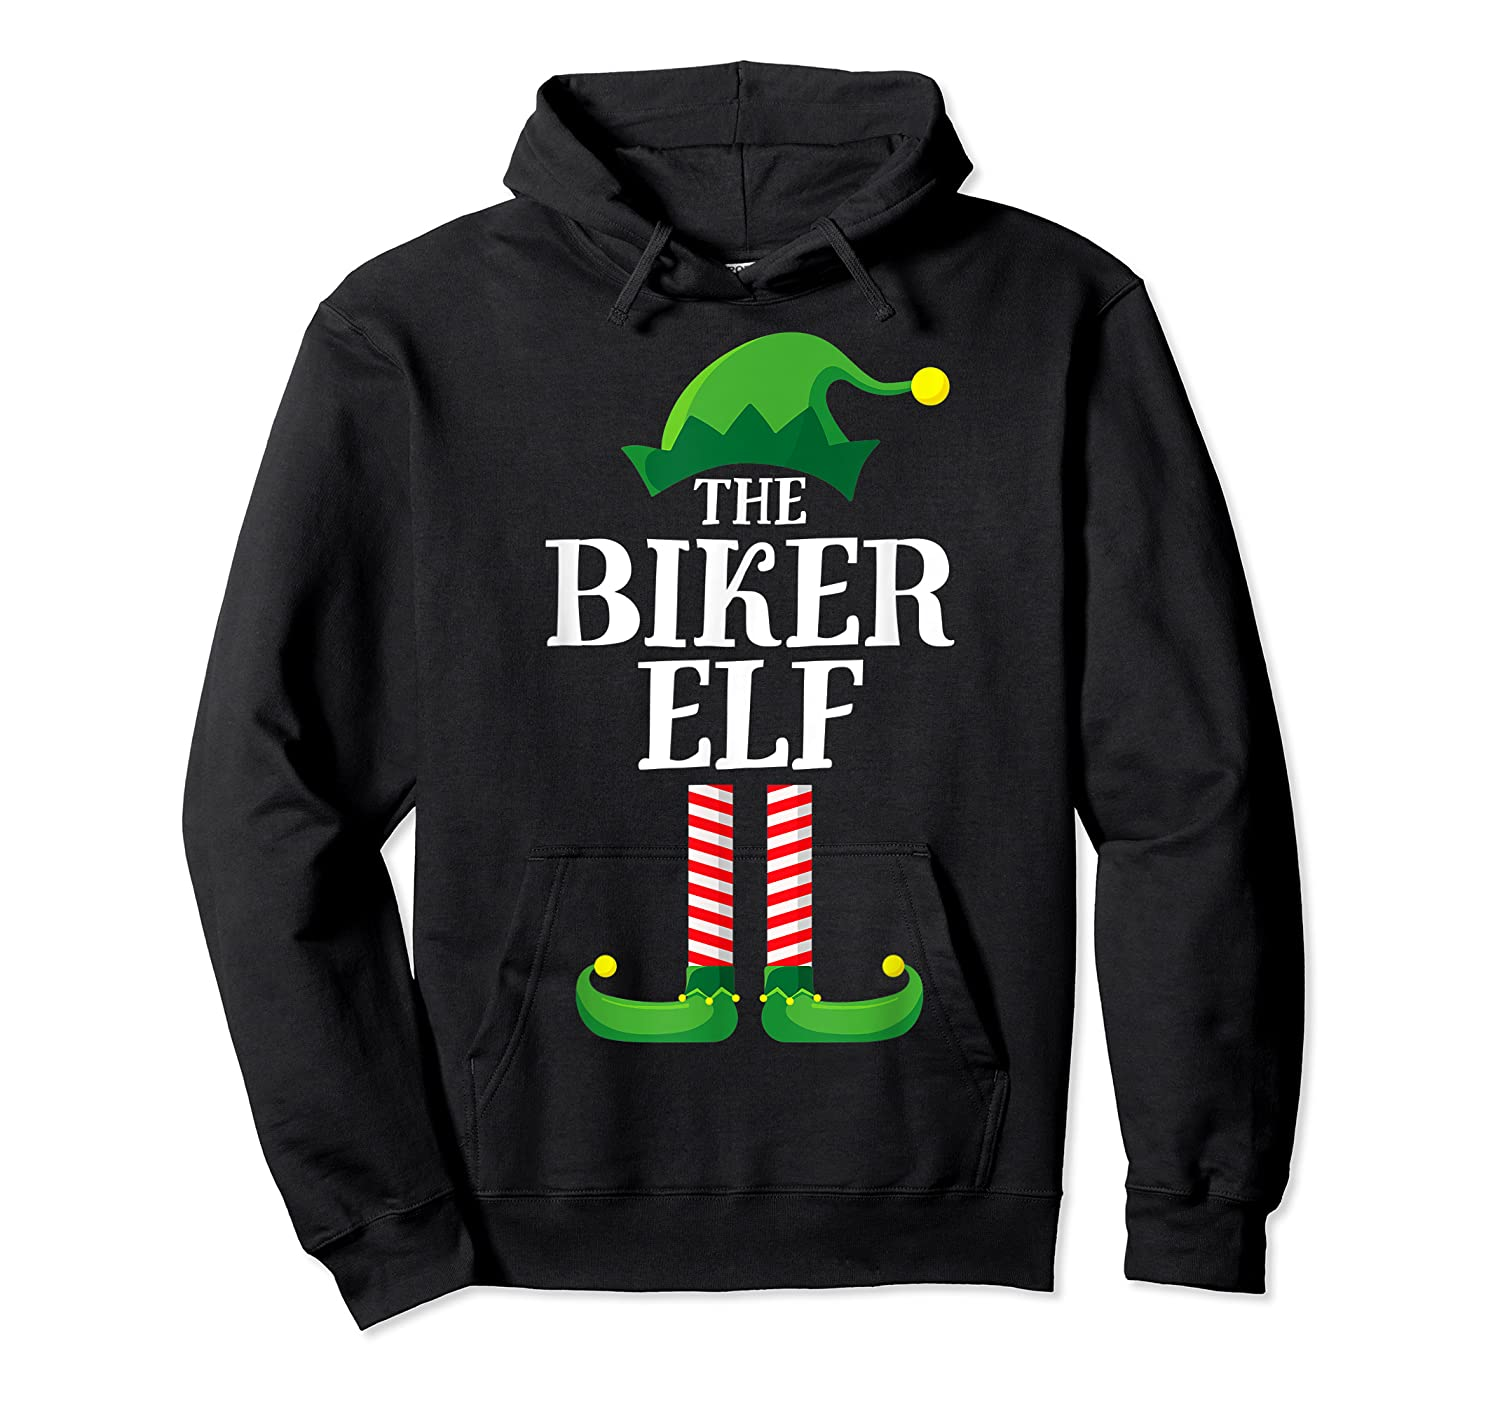 Biker Elf Matching Family Group Christmas Party Pajama T-shirt Unisex Pullover Hoodie